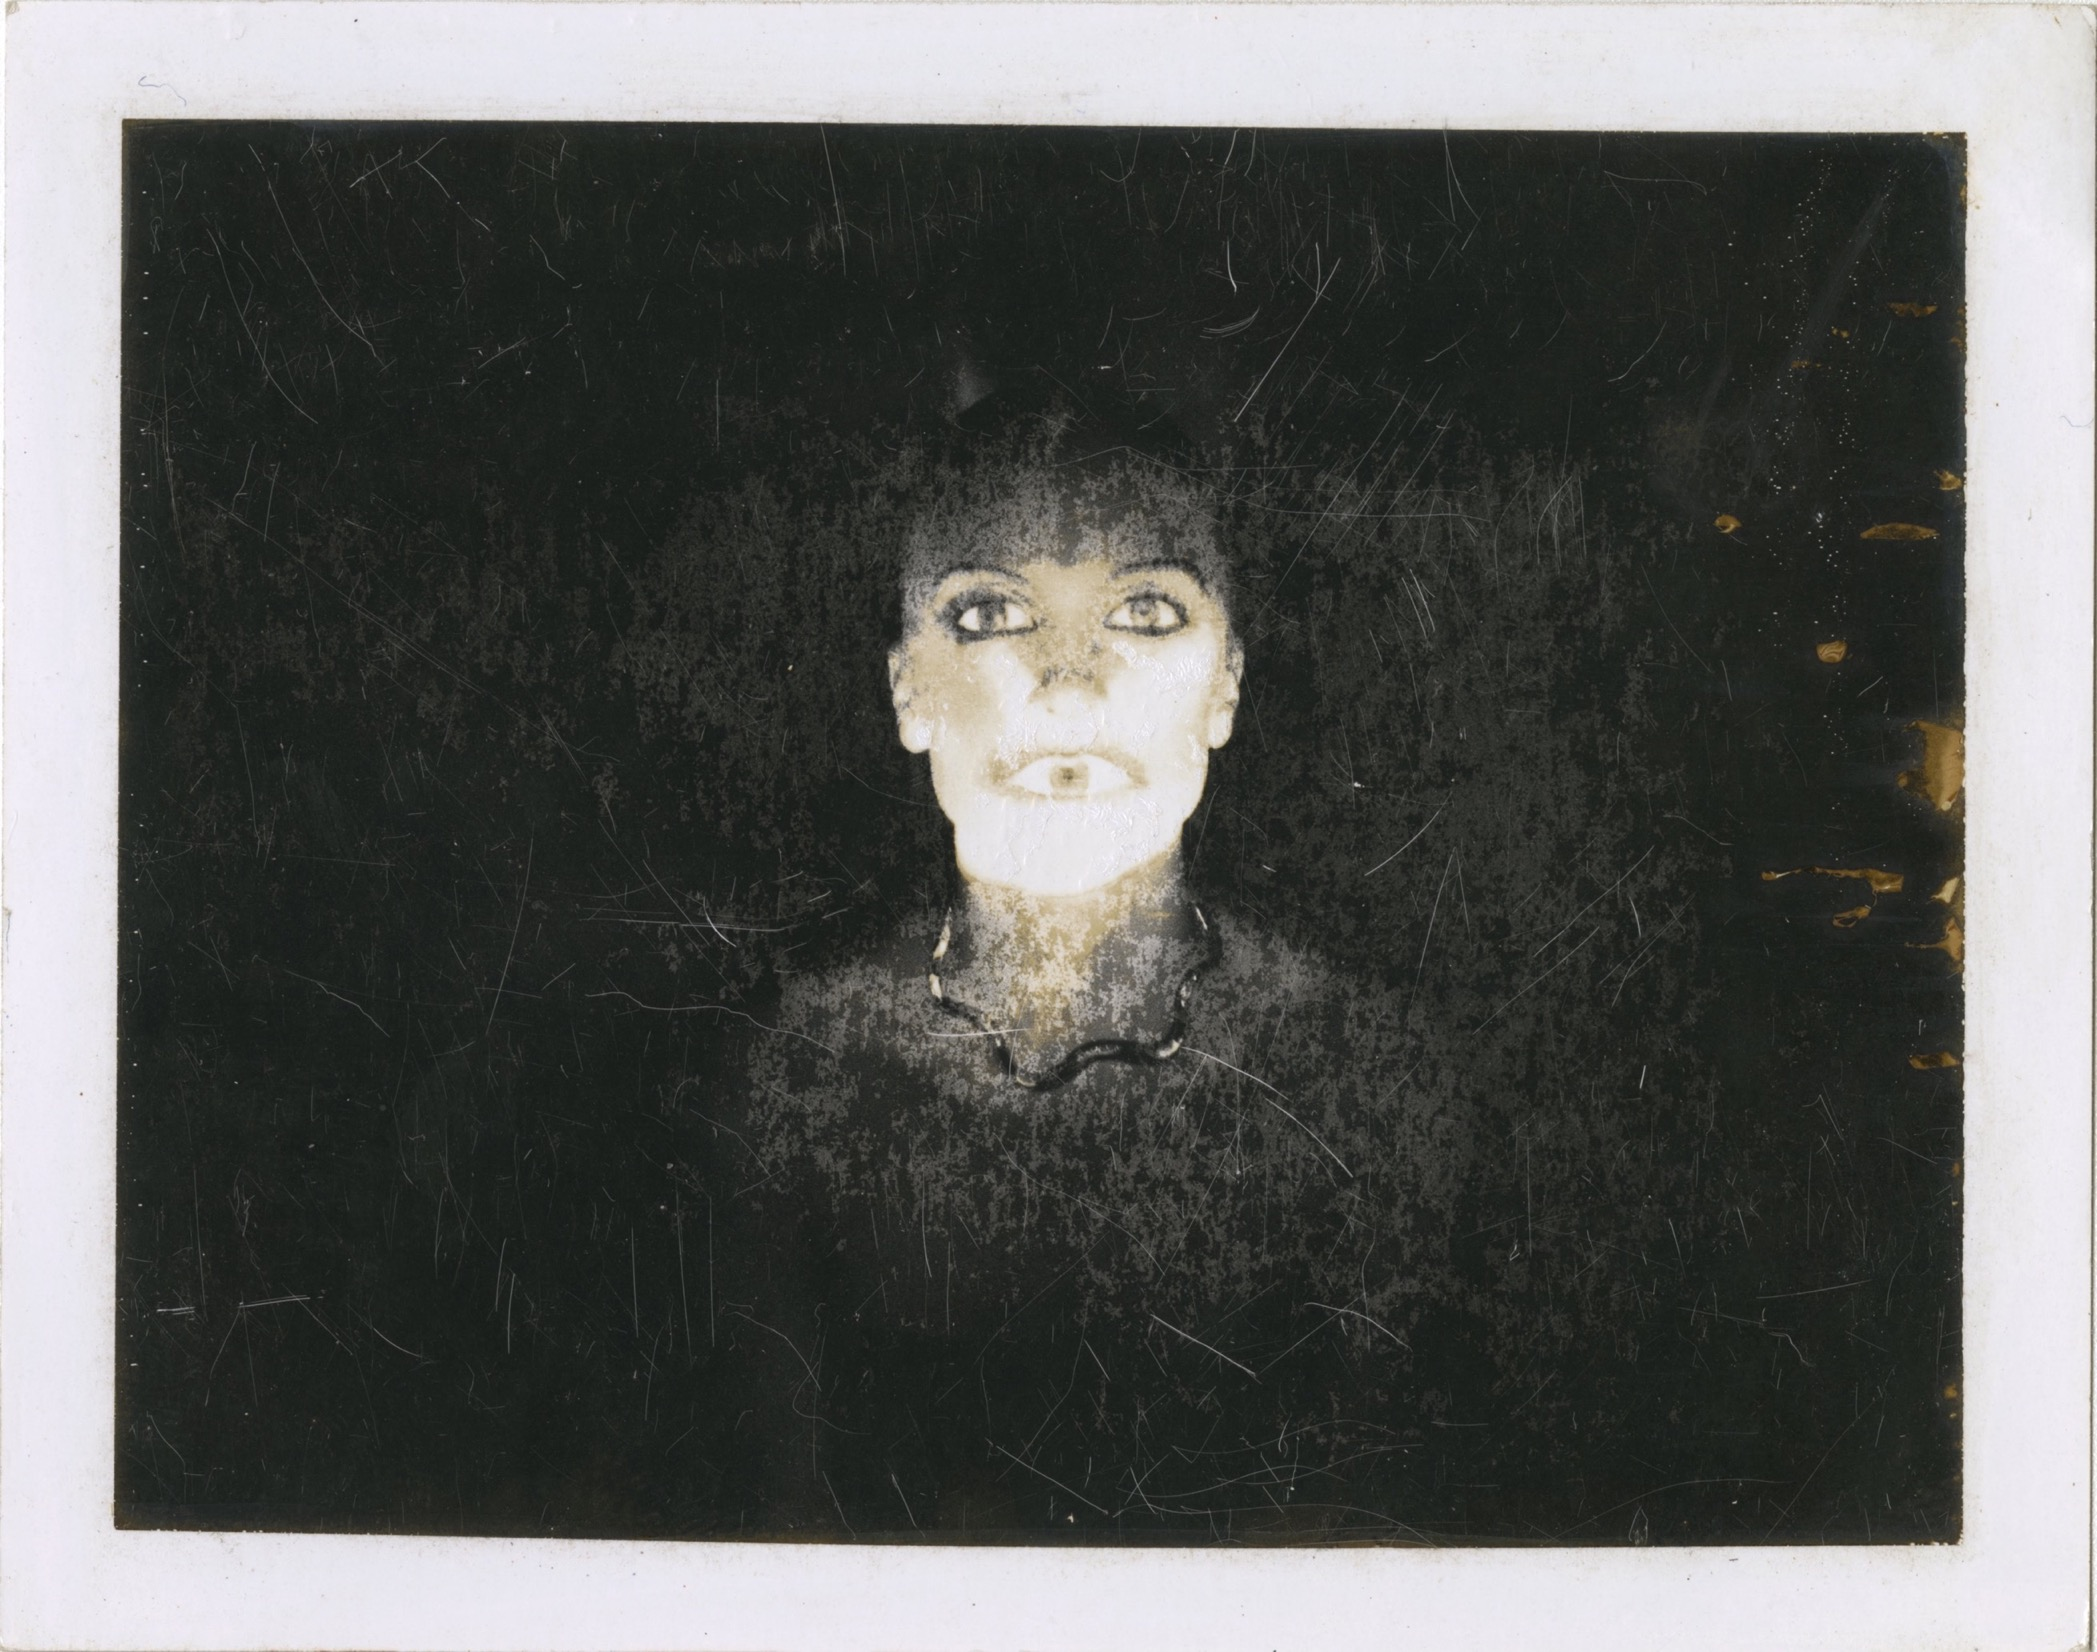 One of Guy Bourdin's Polaroids. Copyright The Guy Bourdin Estate 2018 / Courtesy of Louise Alexander Gallery